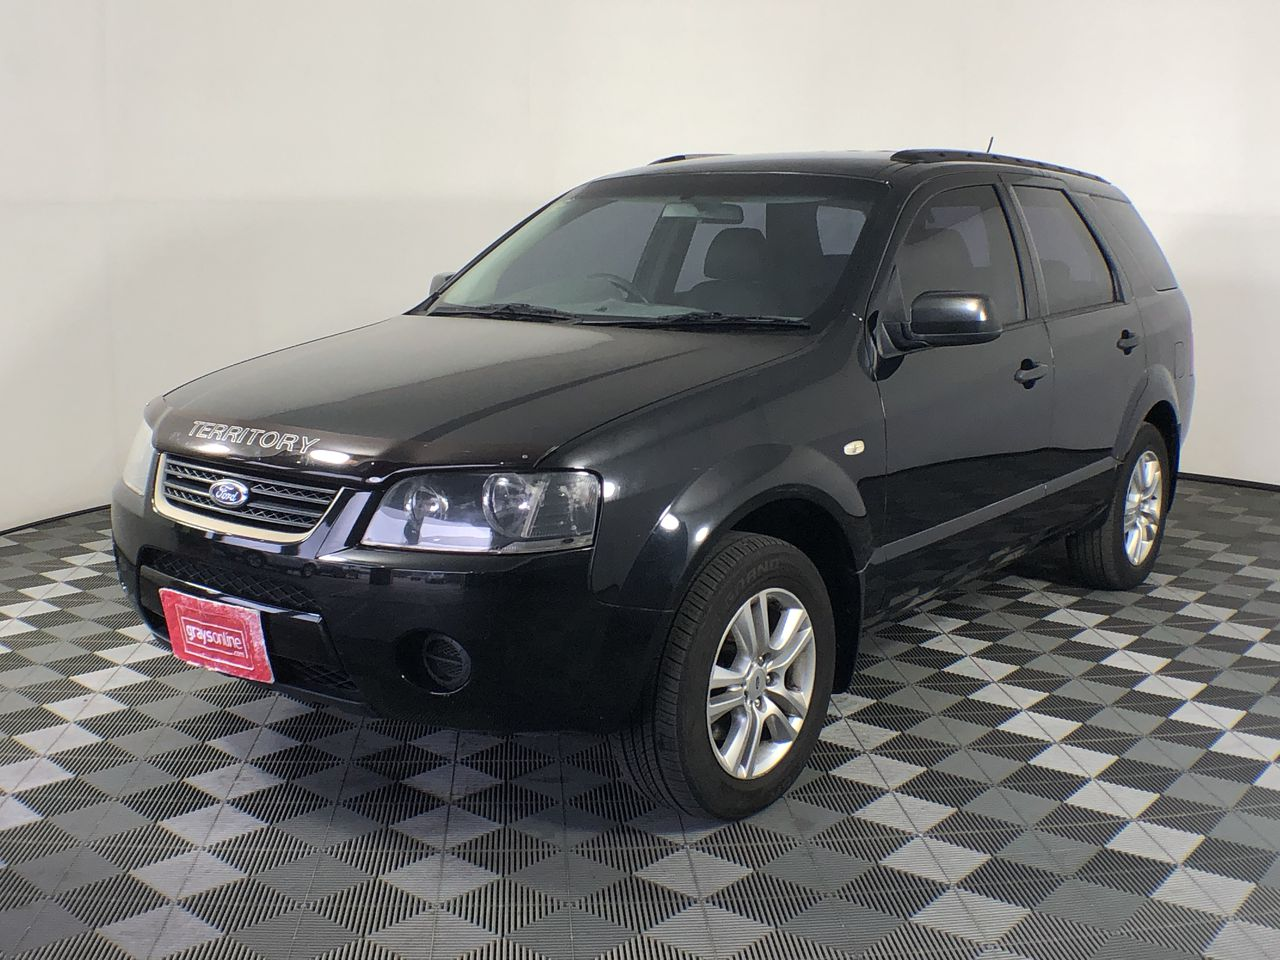 2008 Ford Territory TX SY Automatic 7 Seats Wagon